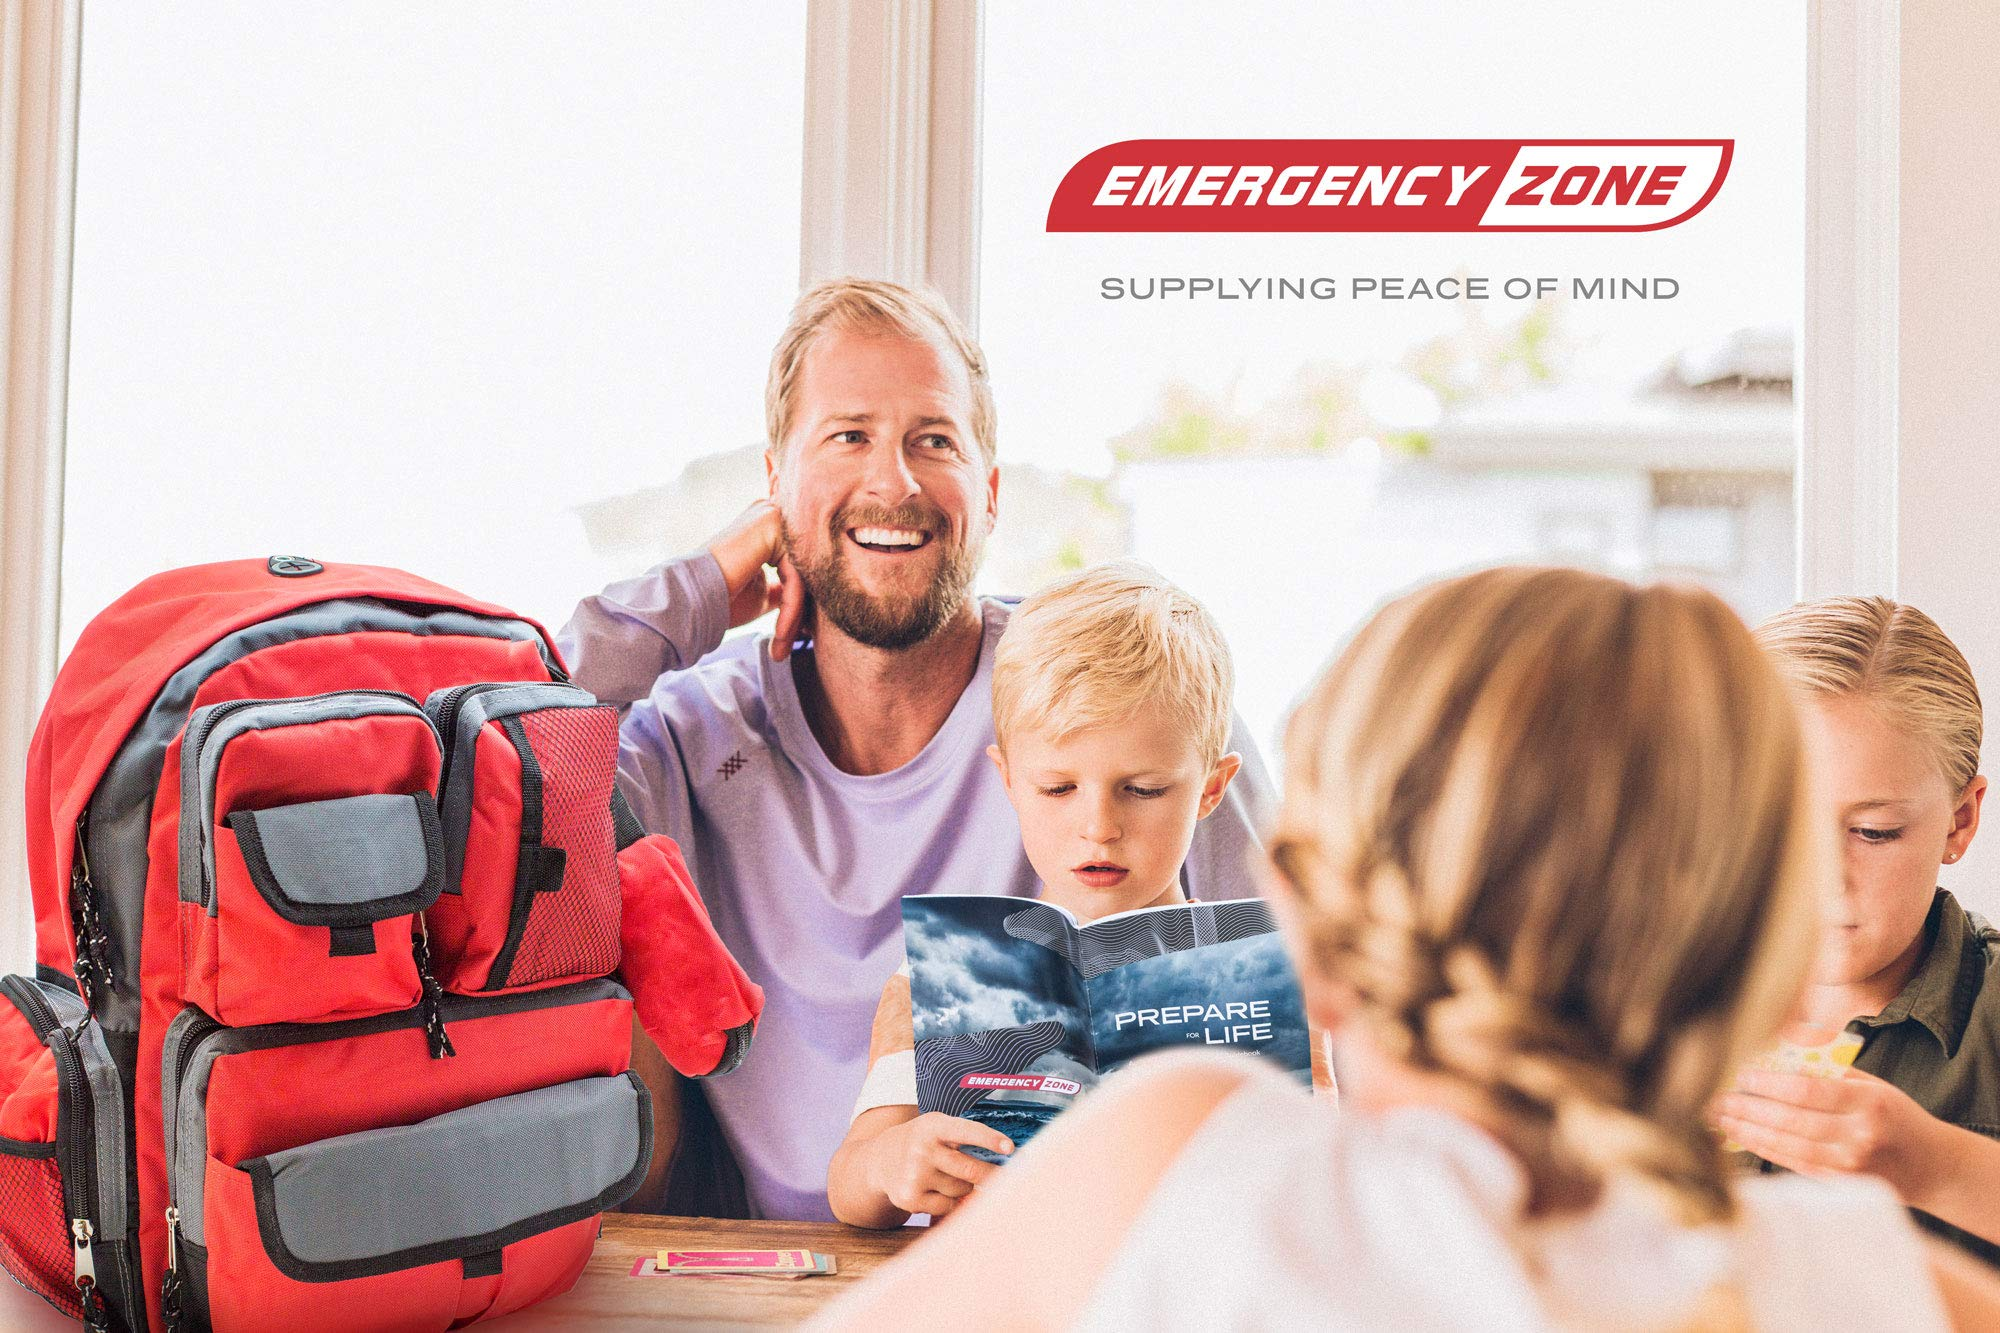 Bundle & Save | Emergency Zone 4 Person Family Prep 72 Hour Survival Kit + Deluxe Child Emergency Go Bag | Perfect Way to Prepare Your Family | Be Ready for Disasters like Hurricanes & Earthquakes by Emergency Zone (Image #8)